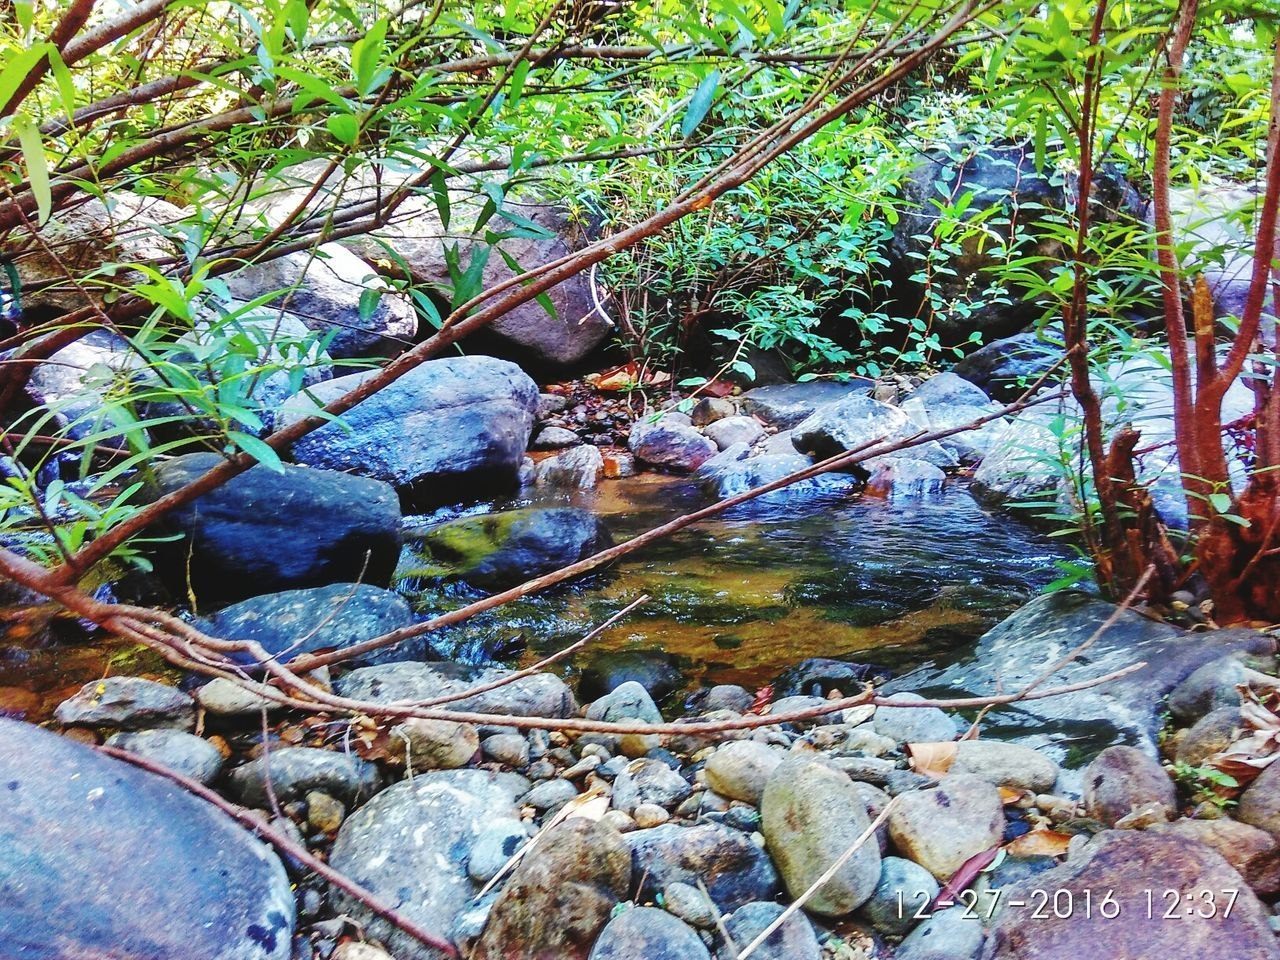 nature, rock - object, day, outdoors, tranquil scene, tranquility, beauty in nature, water, tree, no people, river, forest, leaf, scenics, growth, branch